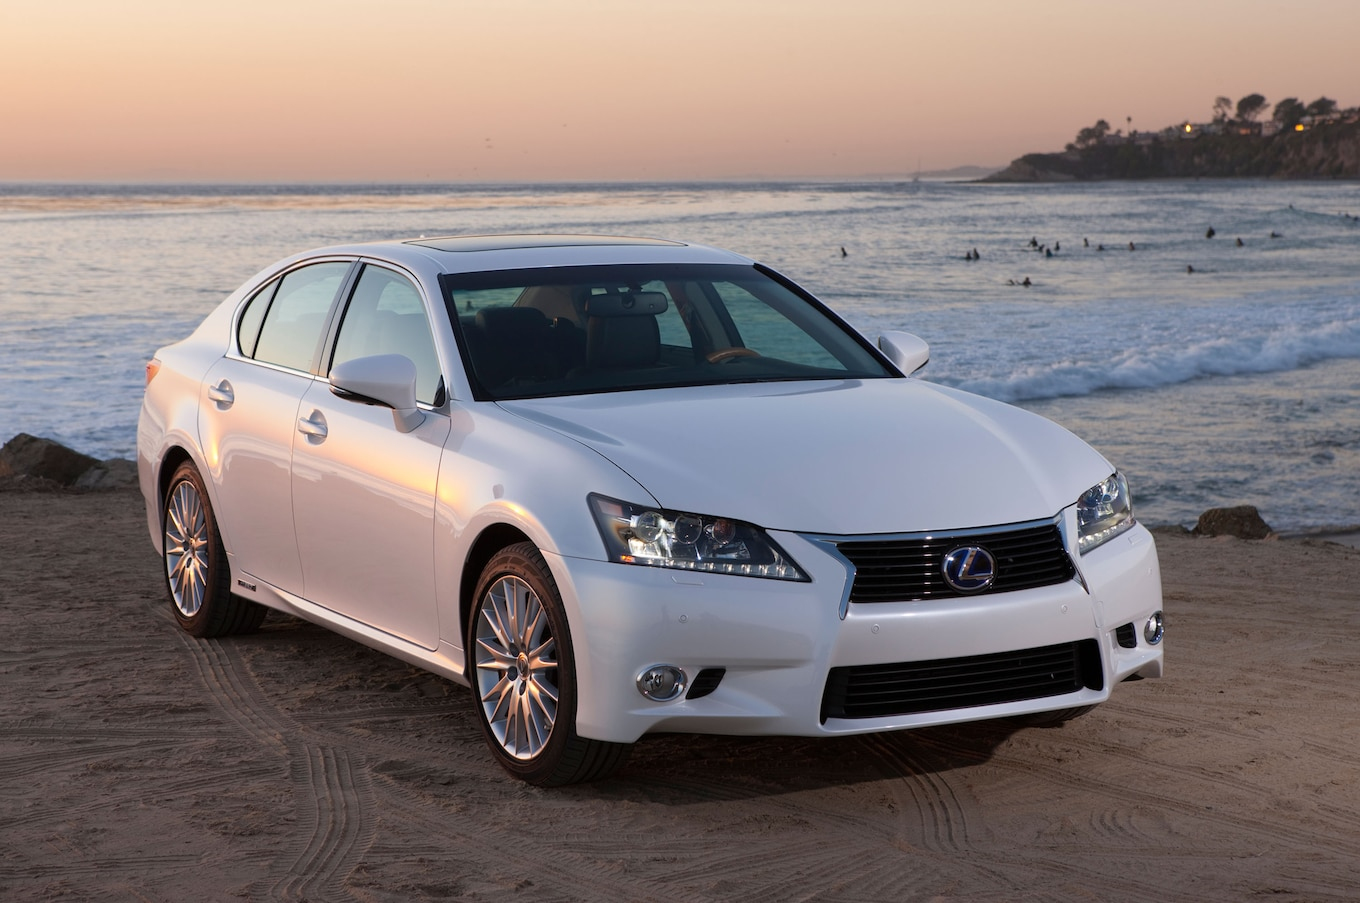 2013 Lexus GS 450h Owners Manual